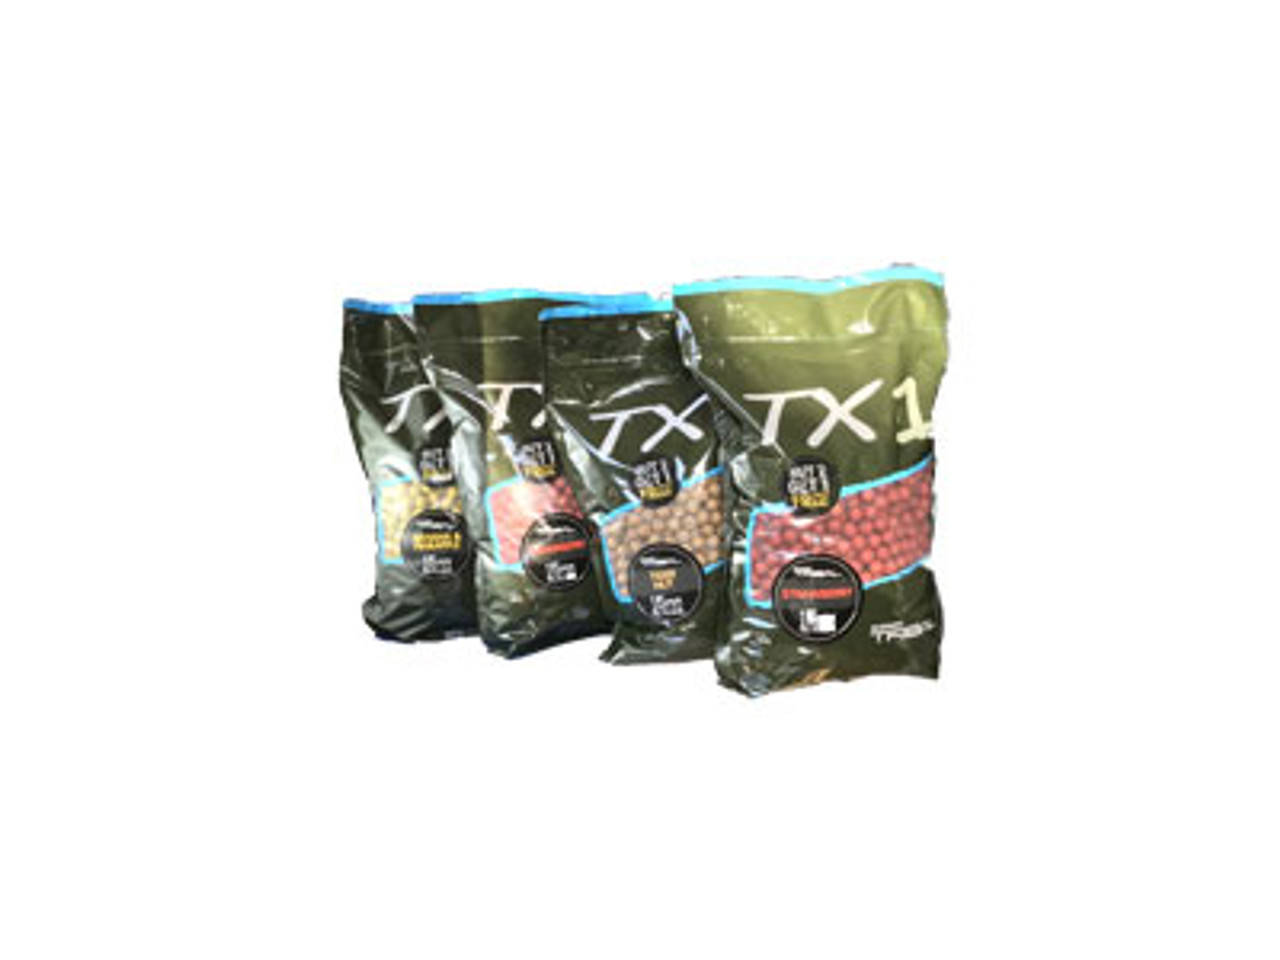 Shimano Tribal TX1 15mm Boilies 5kg - Buy 3 Pay for 2!